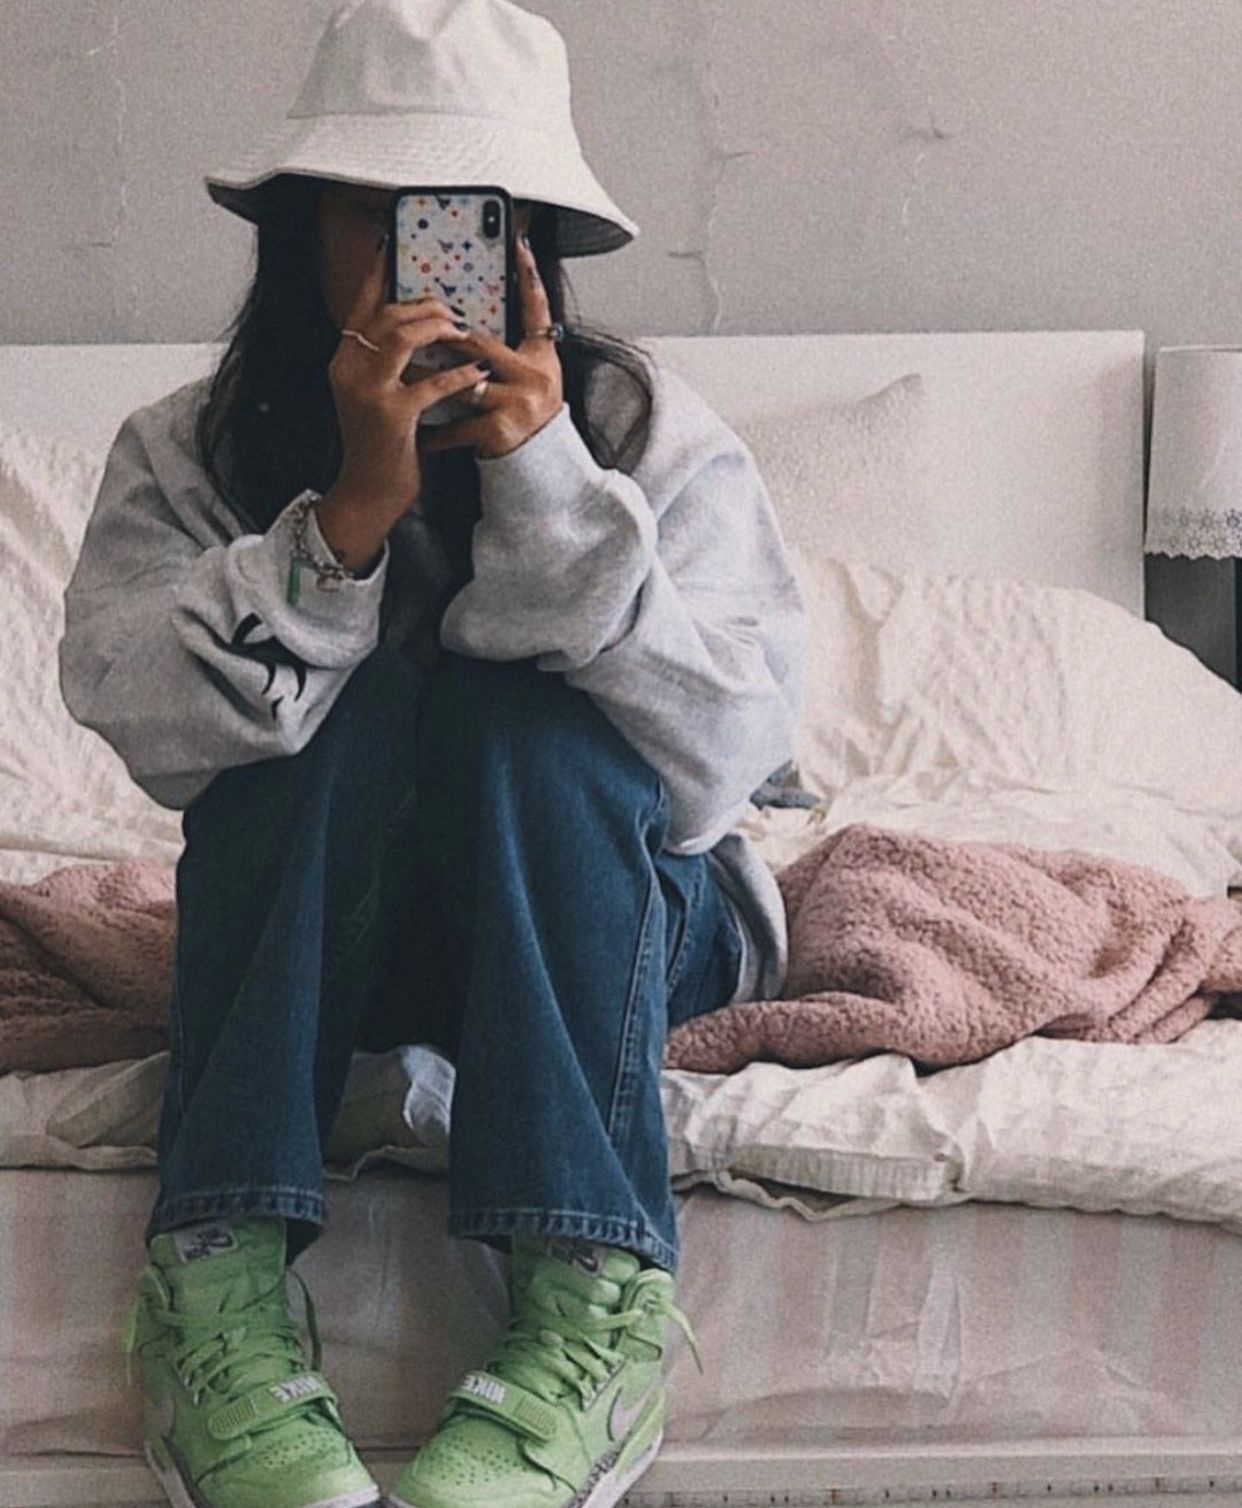 Audrey Mika Baggy Streetwear Neon Grey Bucket Hat Skate Jeans Audrey Mika Baggy Streetwear Neon Outfits With Hats Retro Outfits Cute Casual Outfits